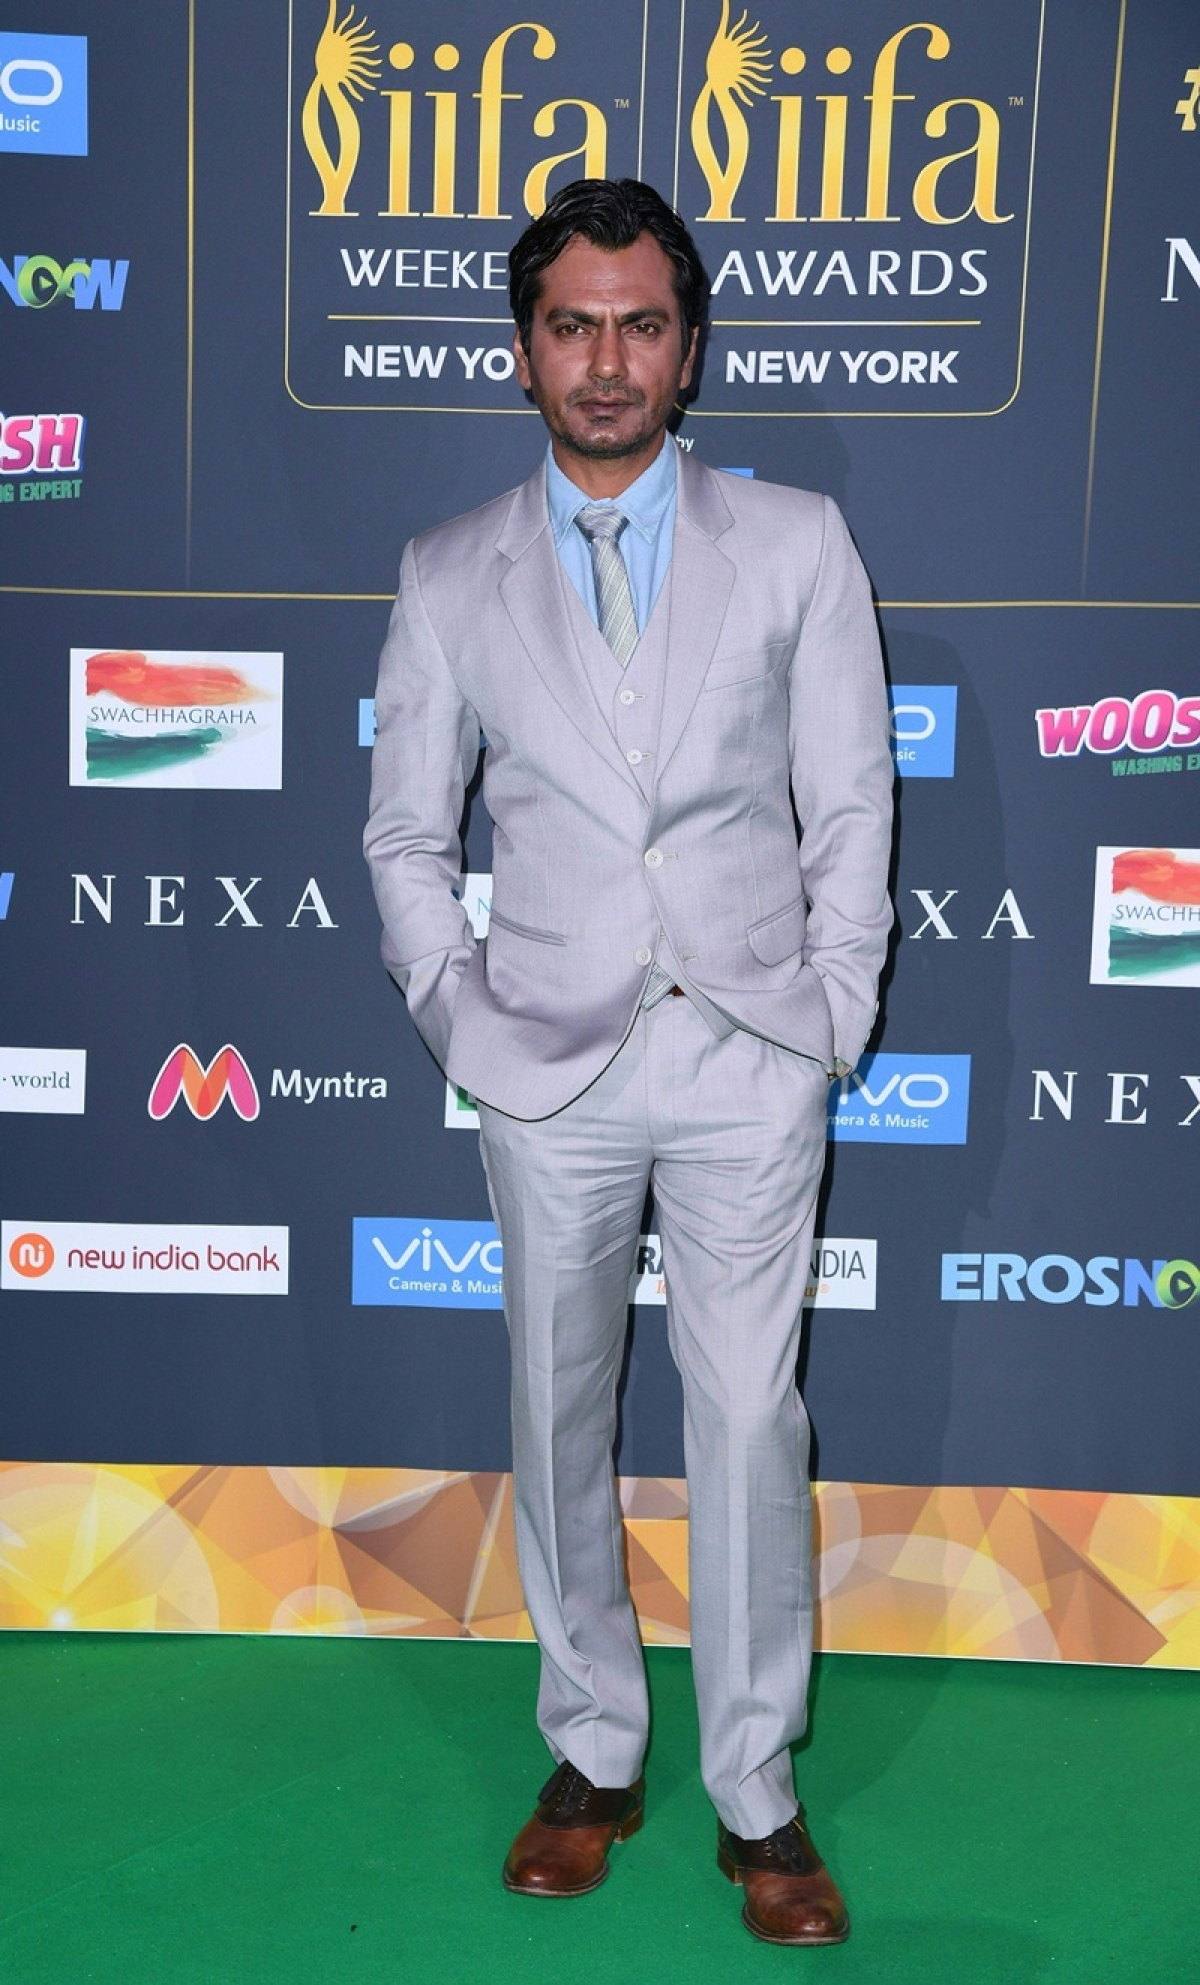 Bollywood actor Nawazuddin Siddiqui arrives for the IIFA Awards July 15, 2017 at the MetLife Stadium in East Rutherford, New Jersey during the 18th International Indian Film Academy (IIFA) Festival. / AFP PHOTO / ANGELA WEISS